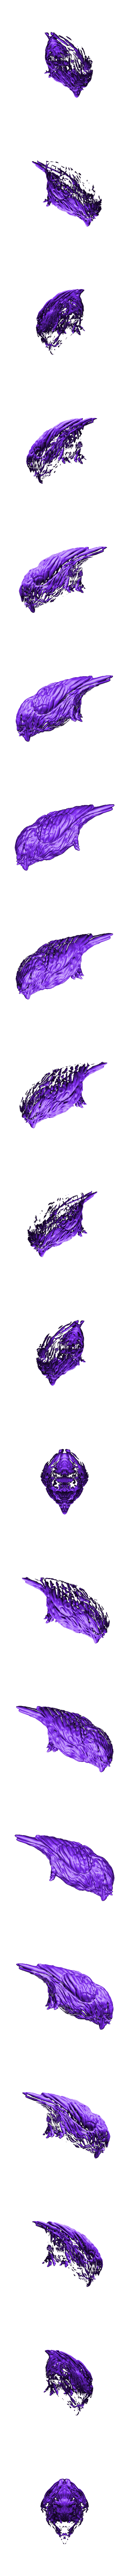 Tawny_Frogmouth_Separate.stl Download STL file Tawny Frogmouth  • 3D printable object, LabradoriteWolf